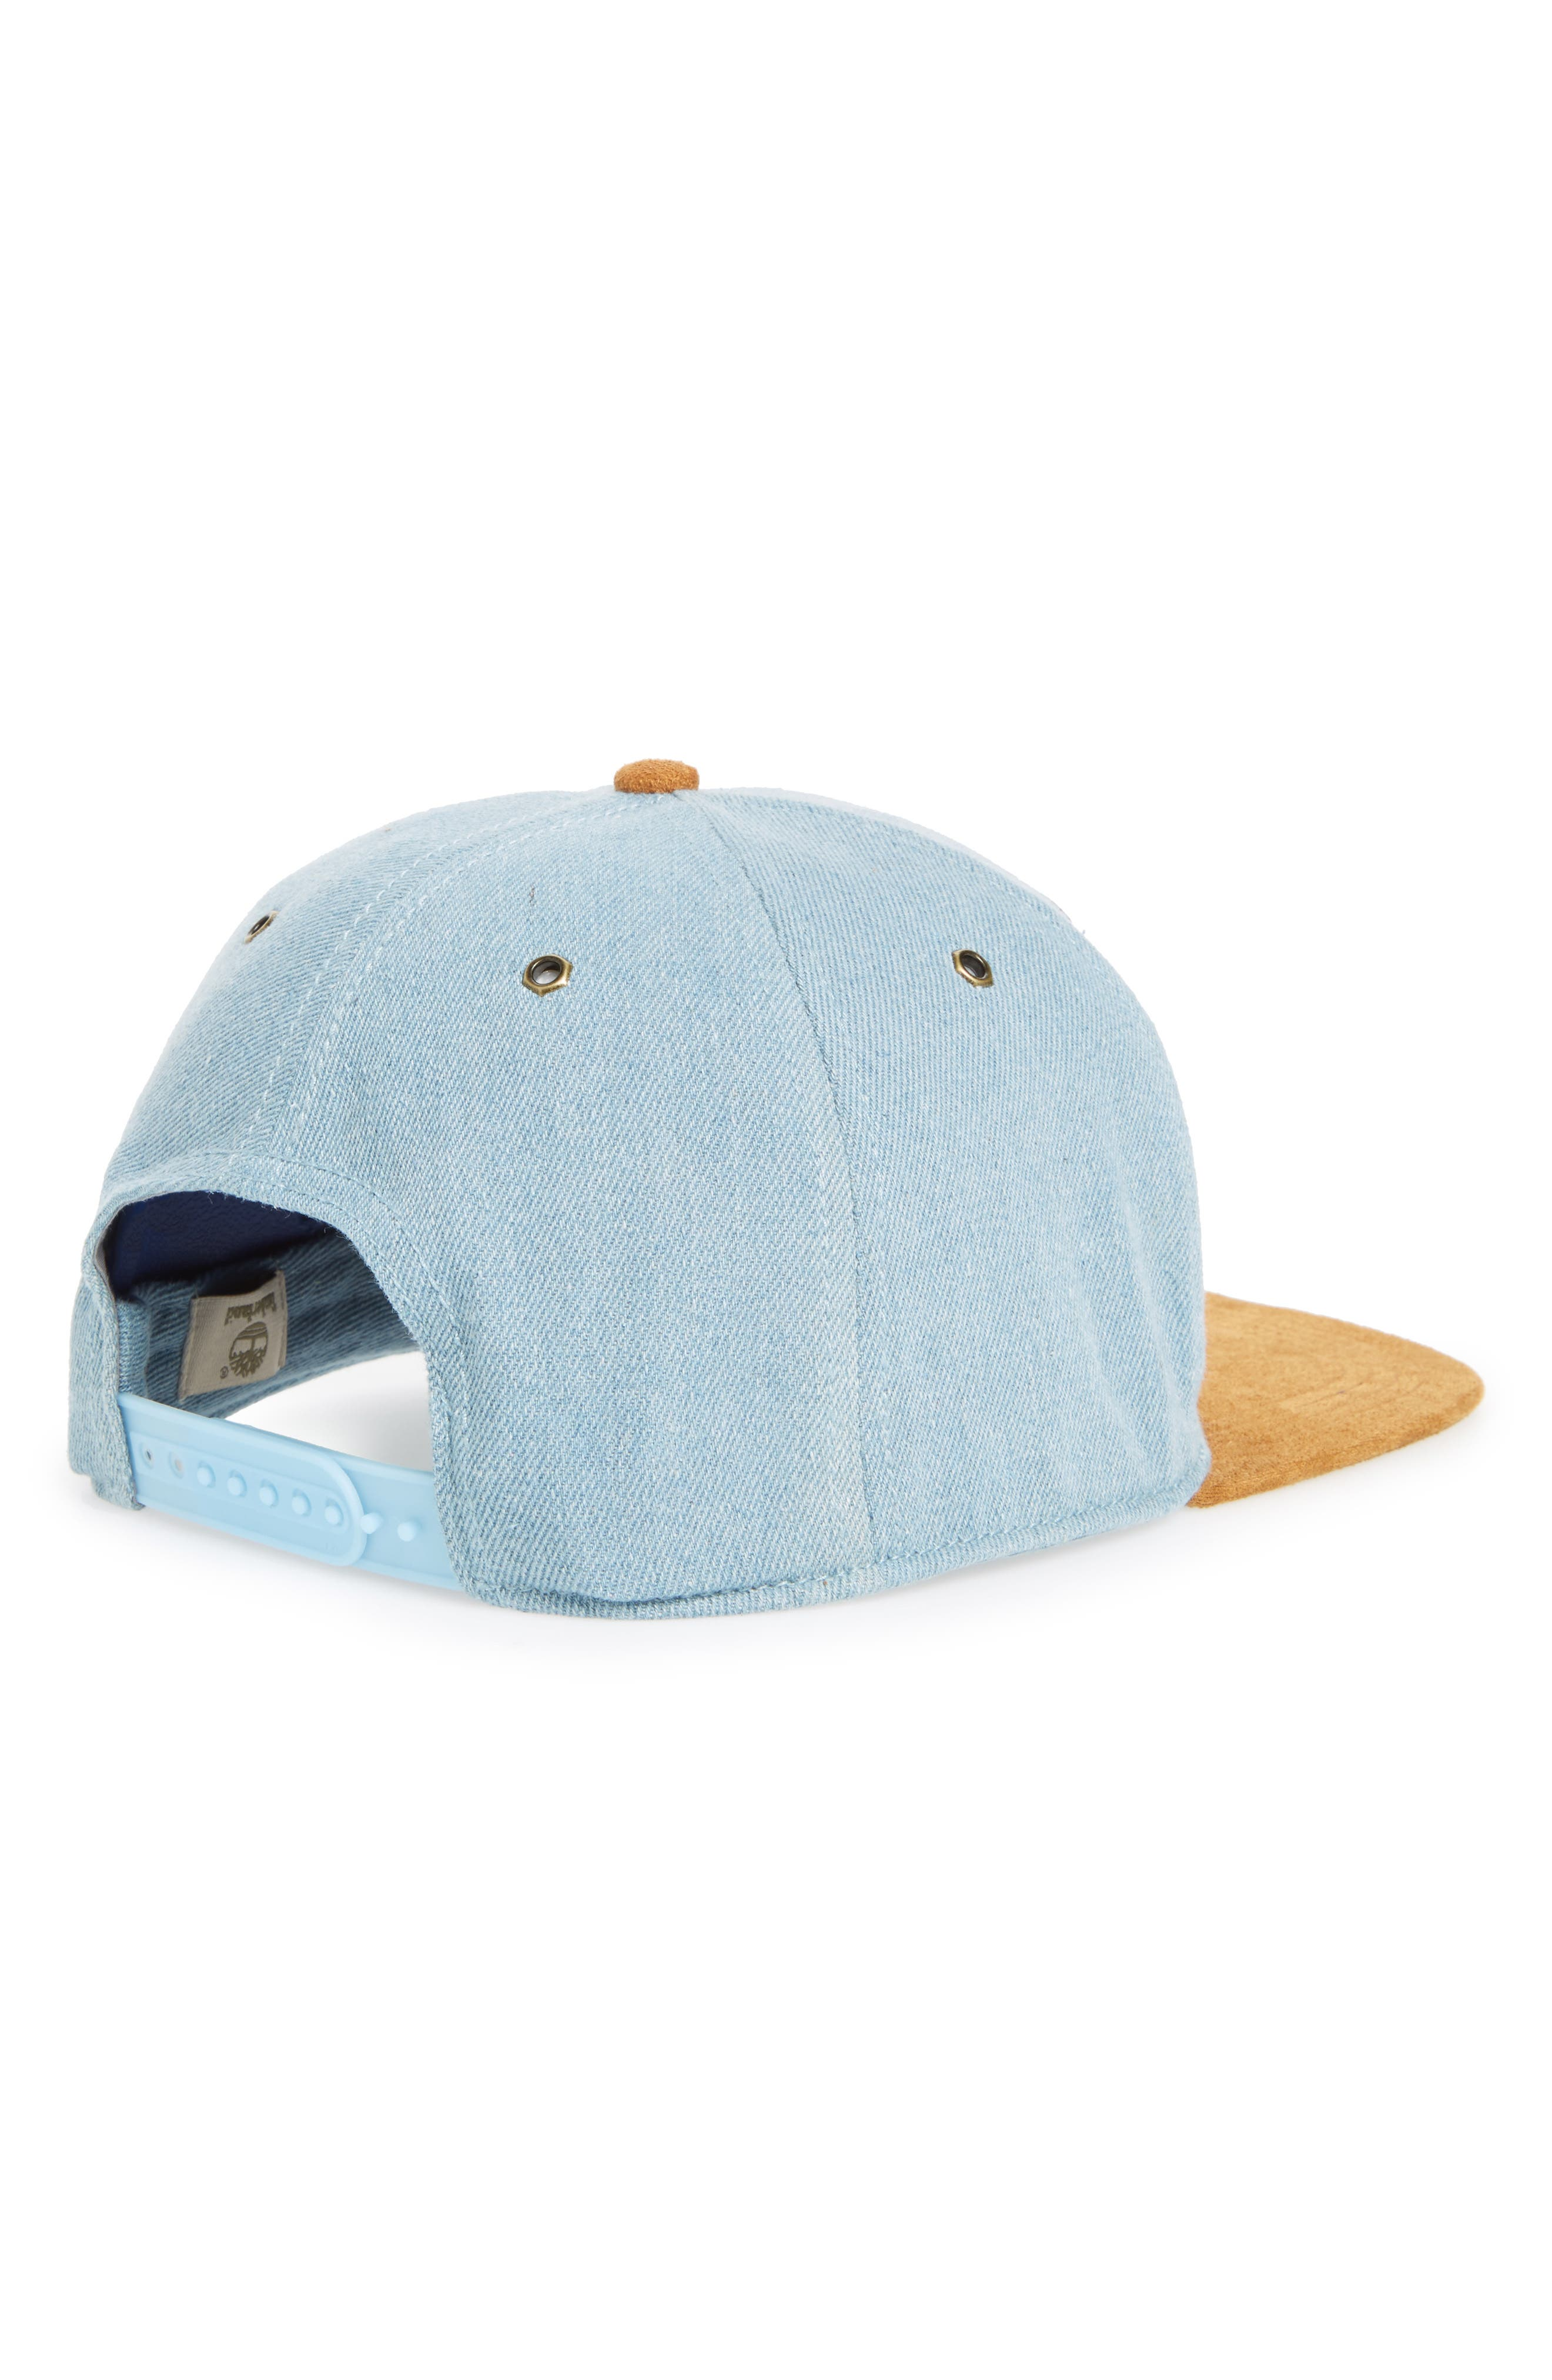 Tilton Logo Baseball Cap,                             Alternate thumbnail 2, color,                             BRUSHED DENIM